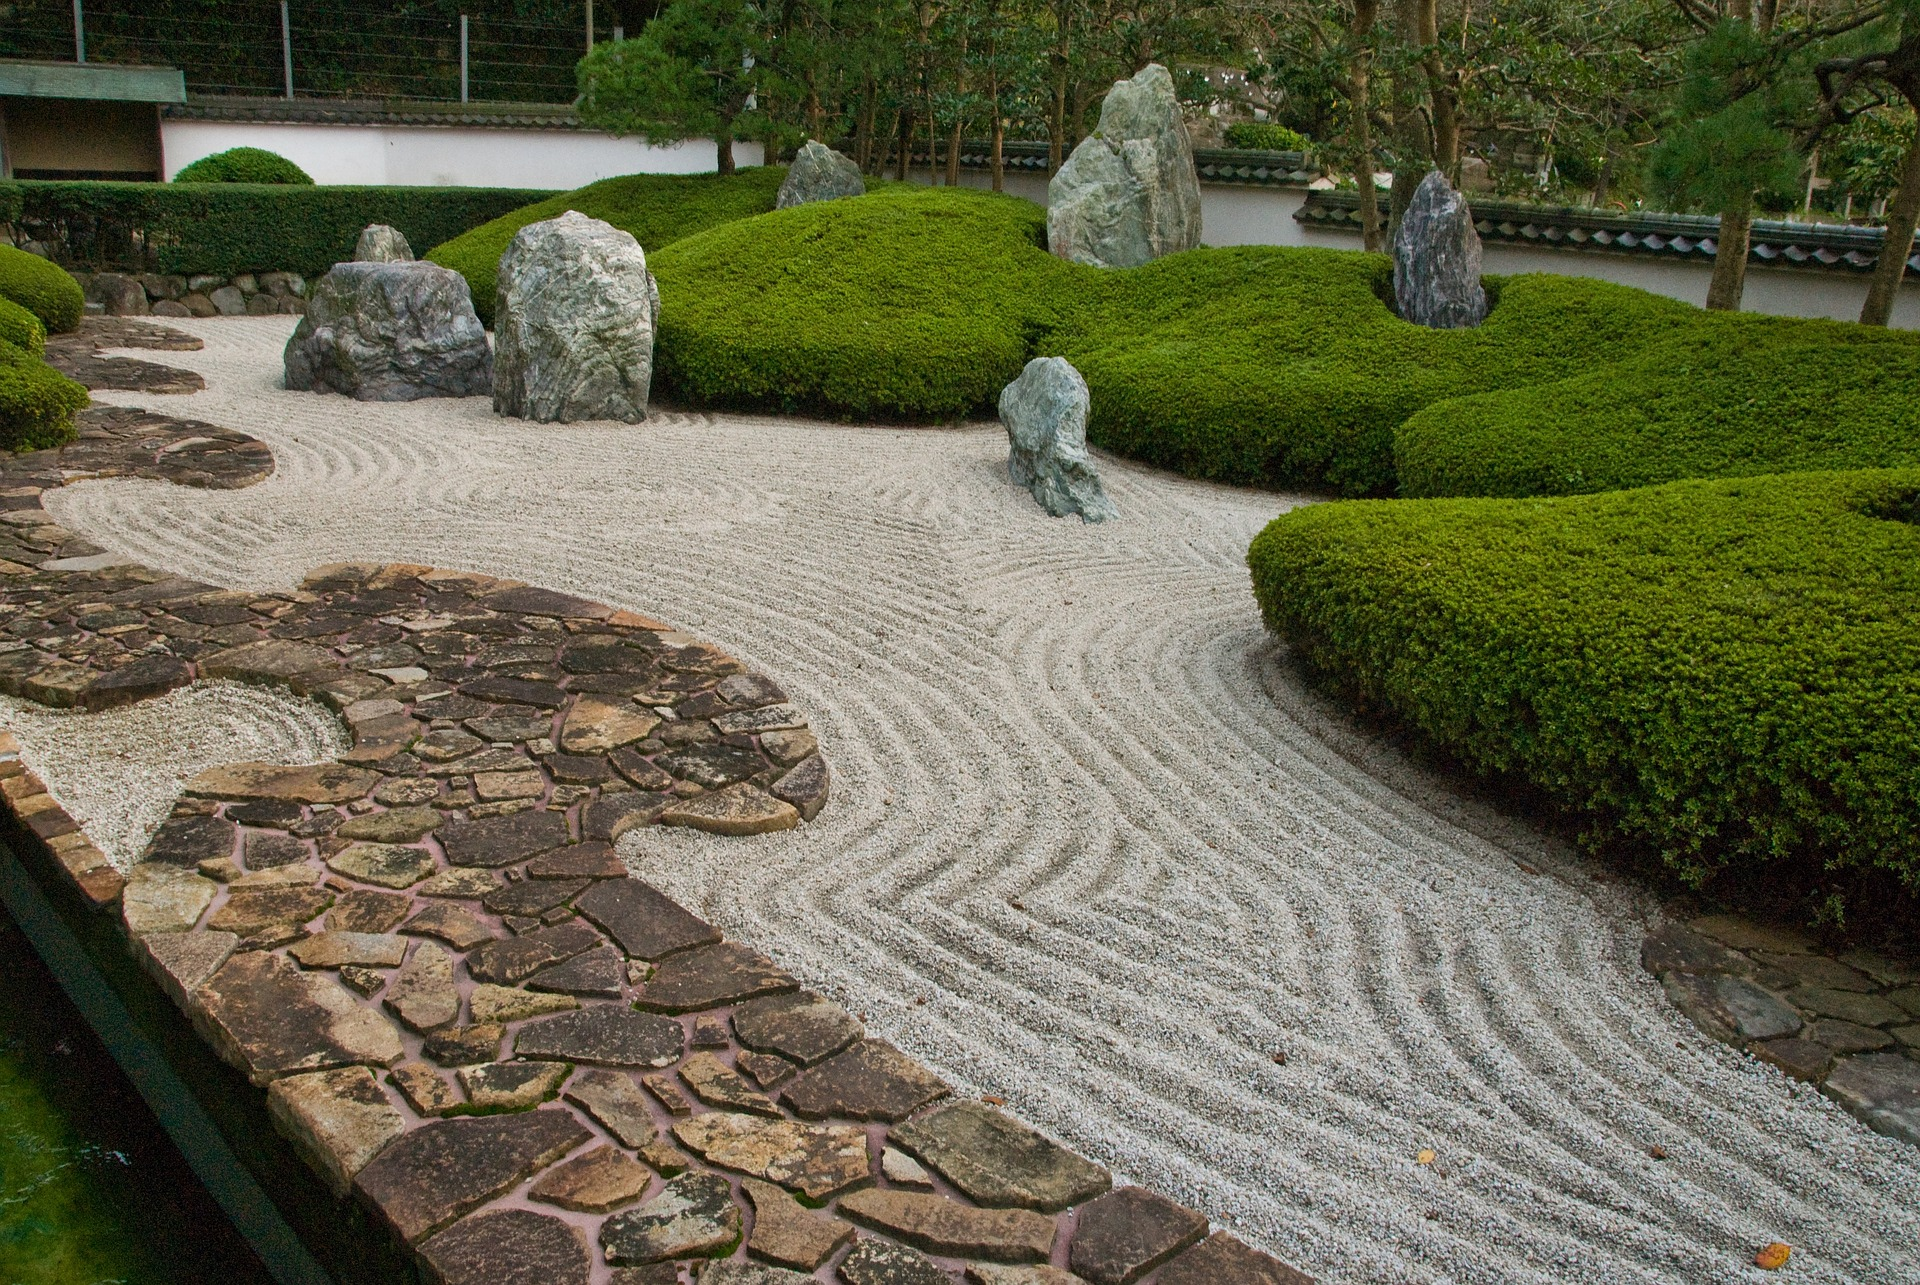 Zen garden with stone path and a pattern of a flowing river.